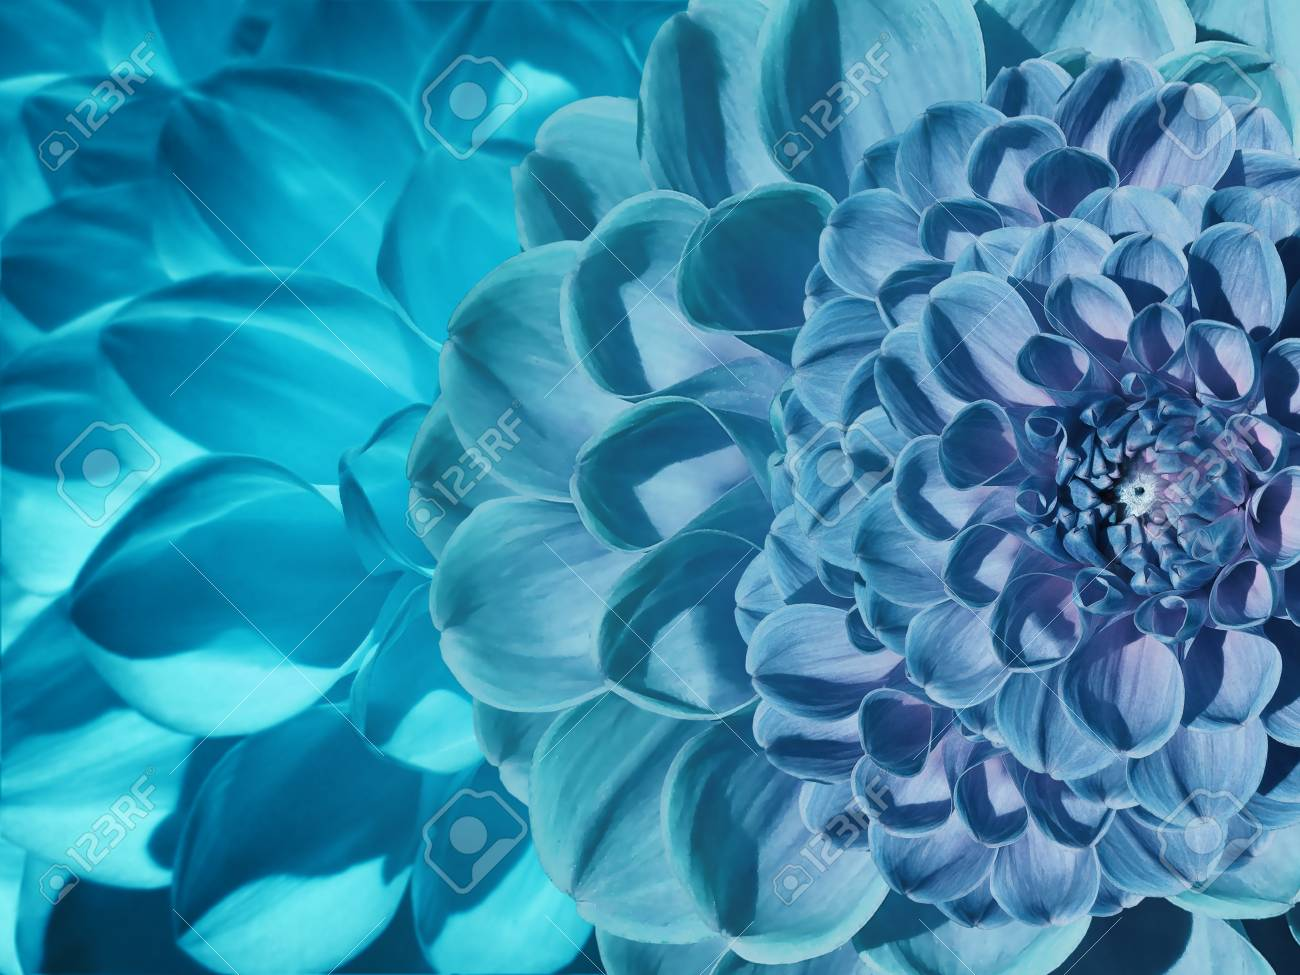 Floral Blue turquoise Beautiful Background  Flower Composition     Floral blue turquoise beautiful background  Flower composition of dahlia  flowers  Close up